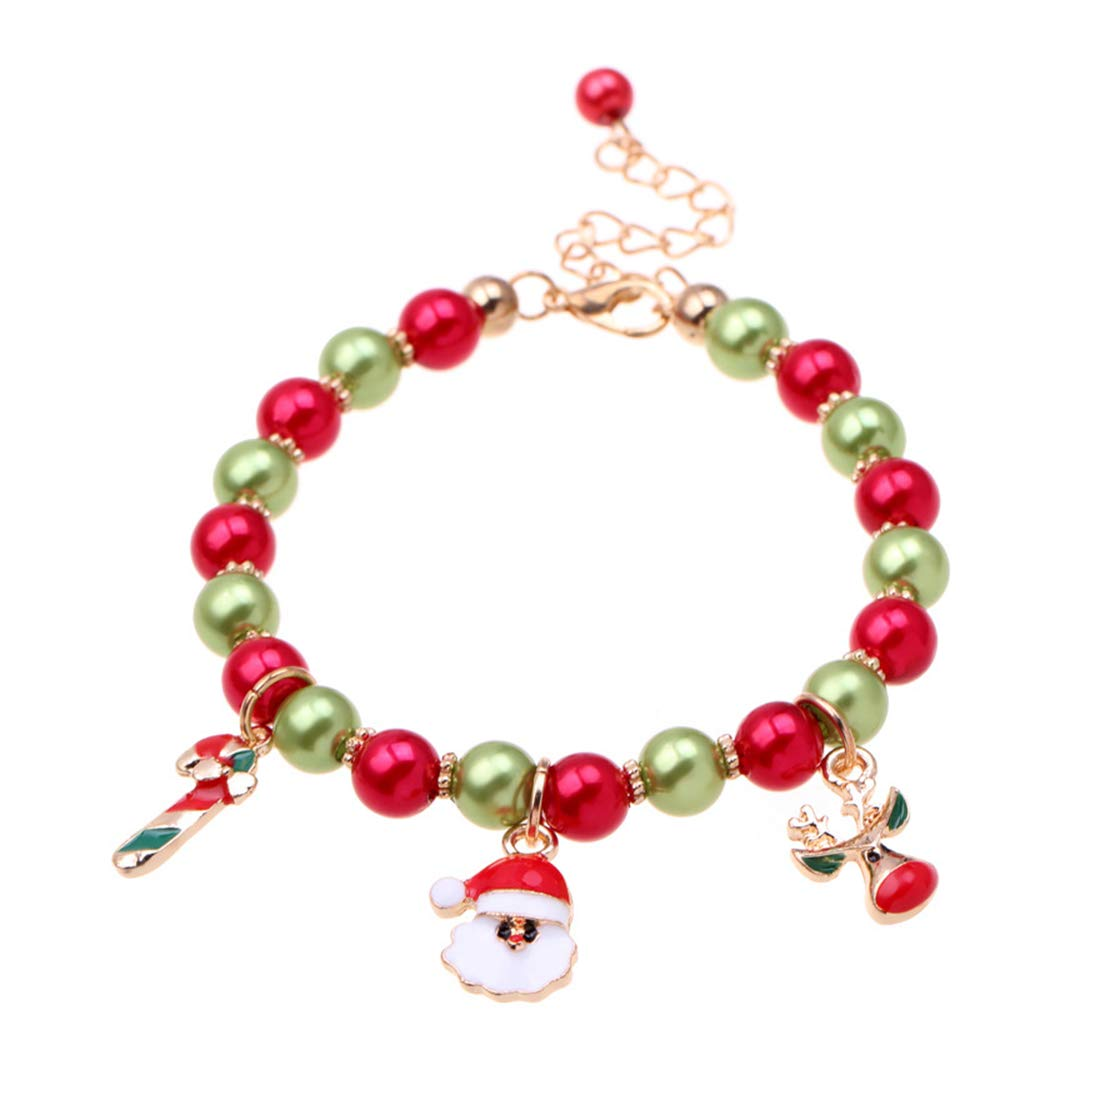 Canboer New Santa Claus Christmas Tree Deer Thread Bracelet Gold Link Cute Adjustable Bracelets Beads Chain Wristband Jewelry for Women Girls